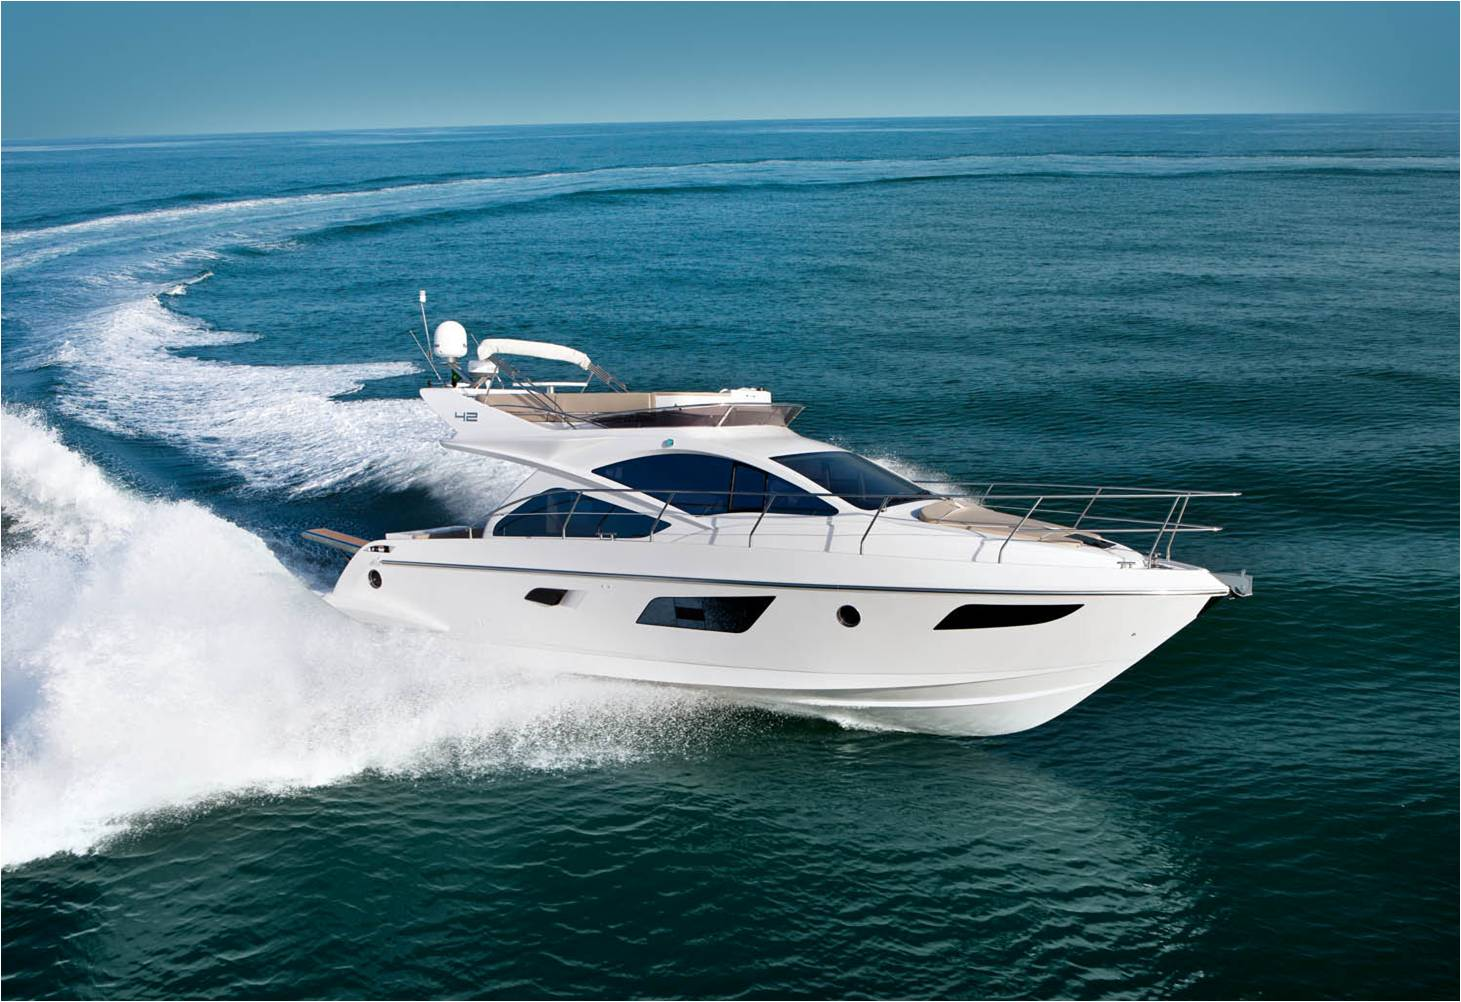 Motor cruisers power boats all boats for Luxury motor yachts for sale